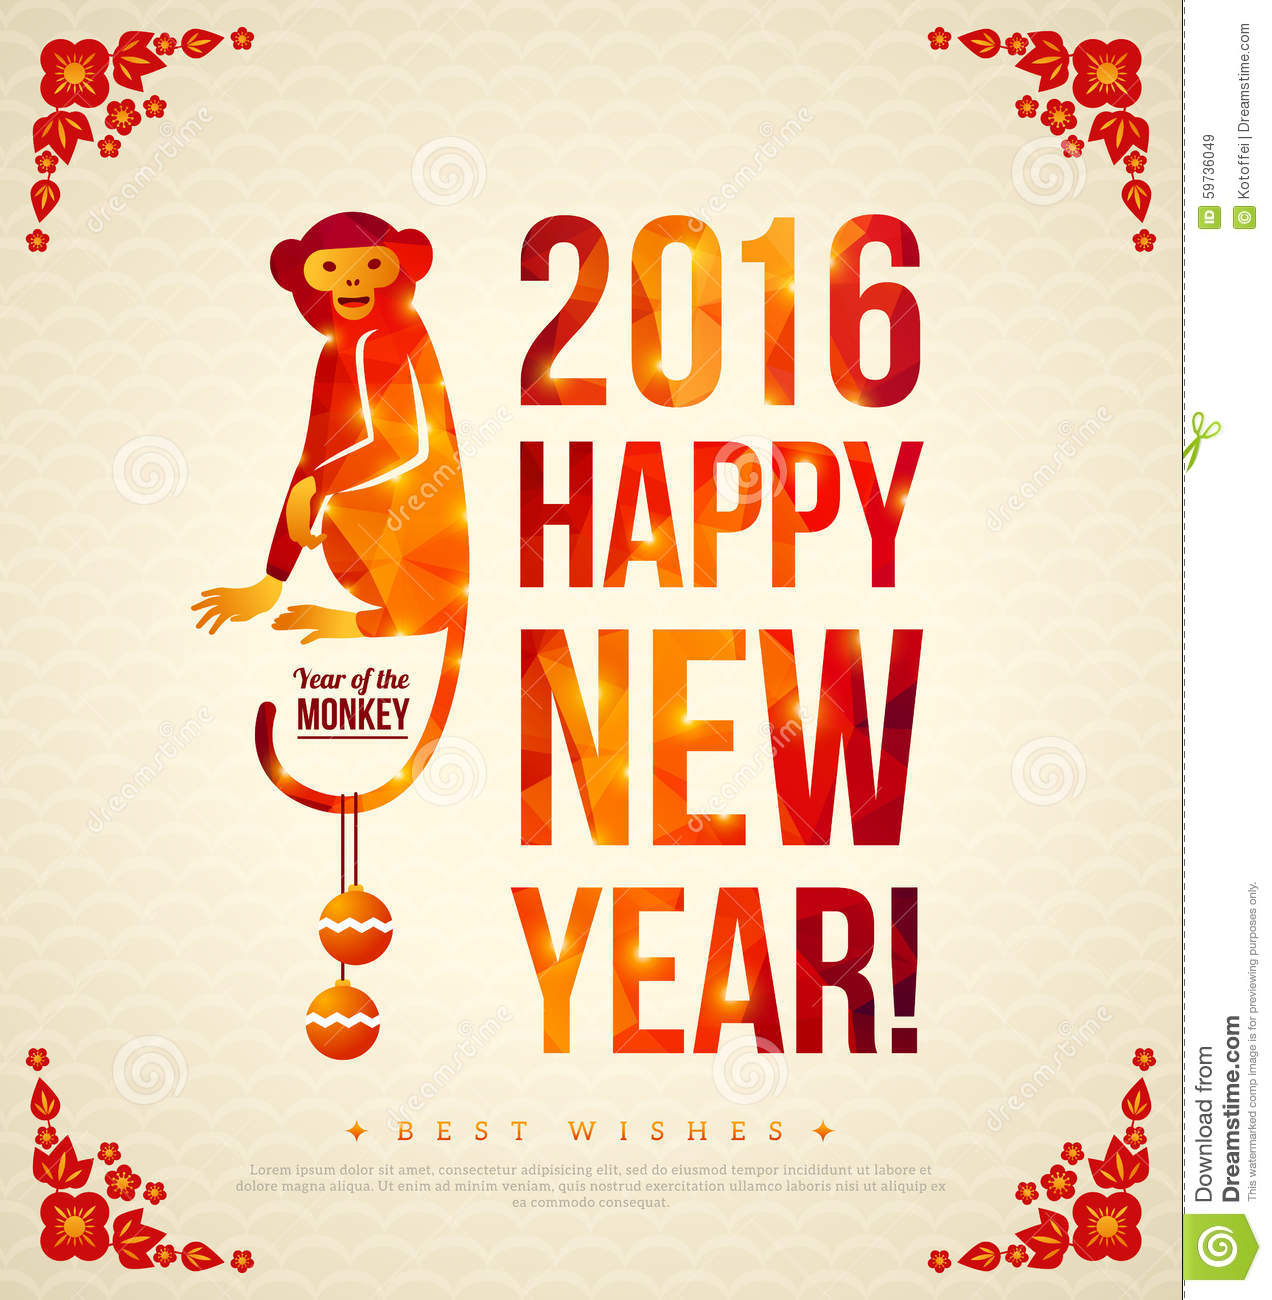 3266 Chinese New Year free clipart.